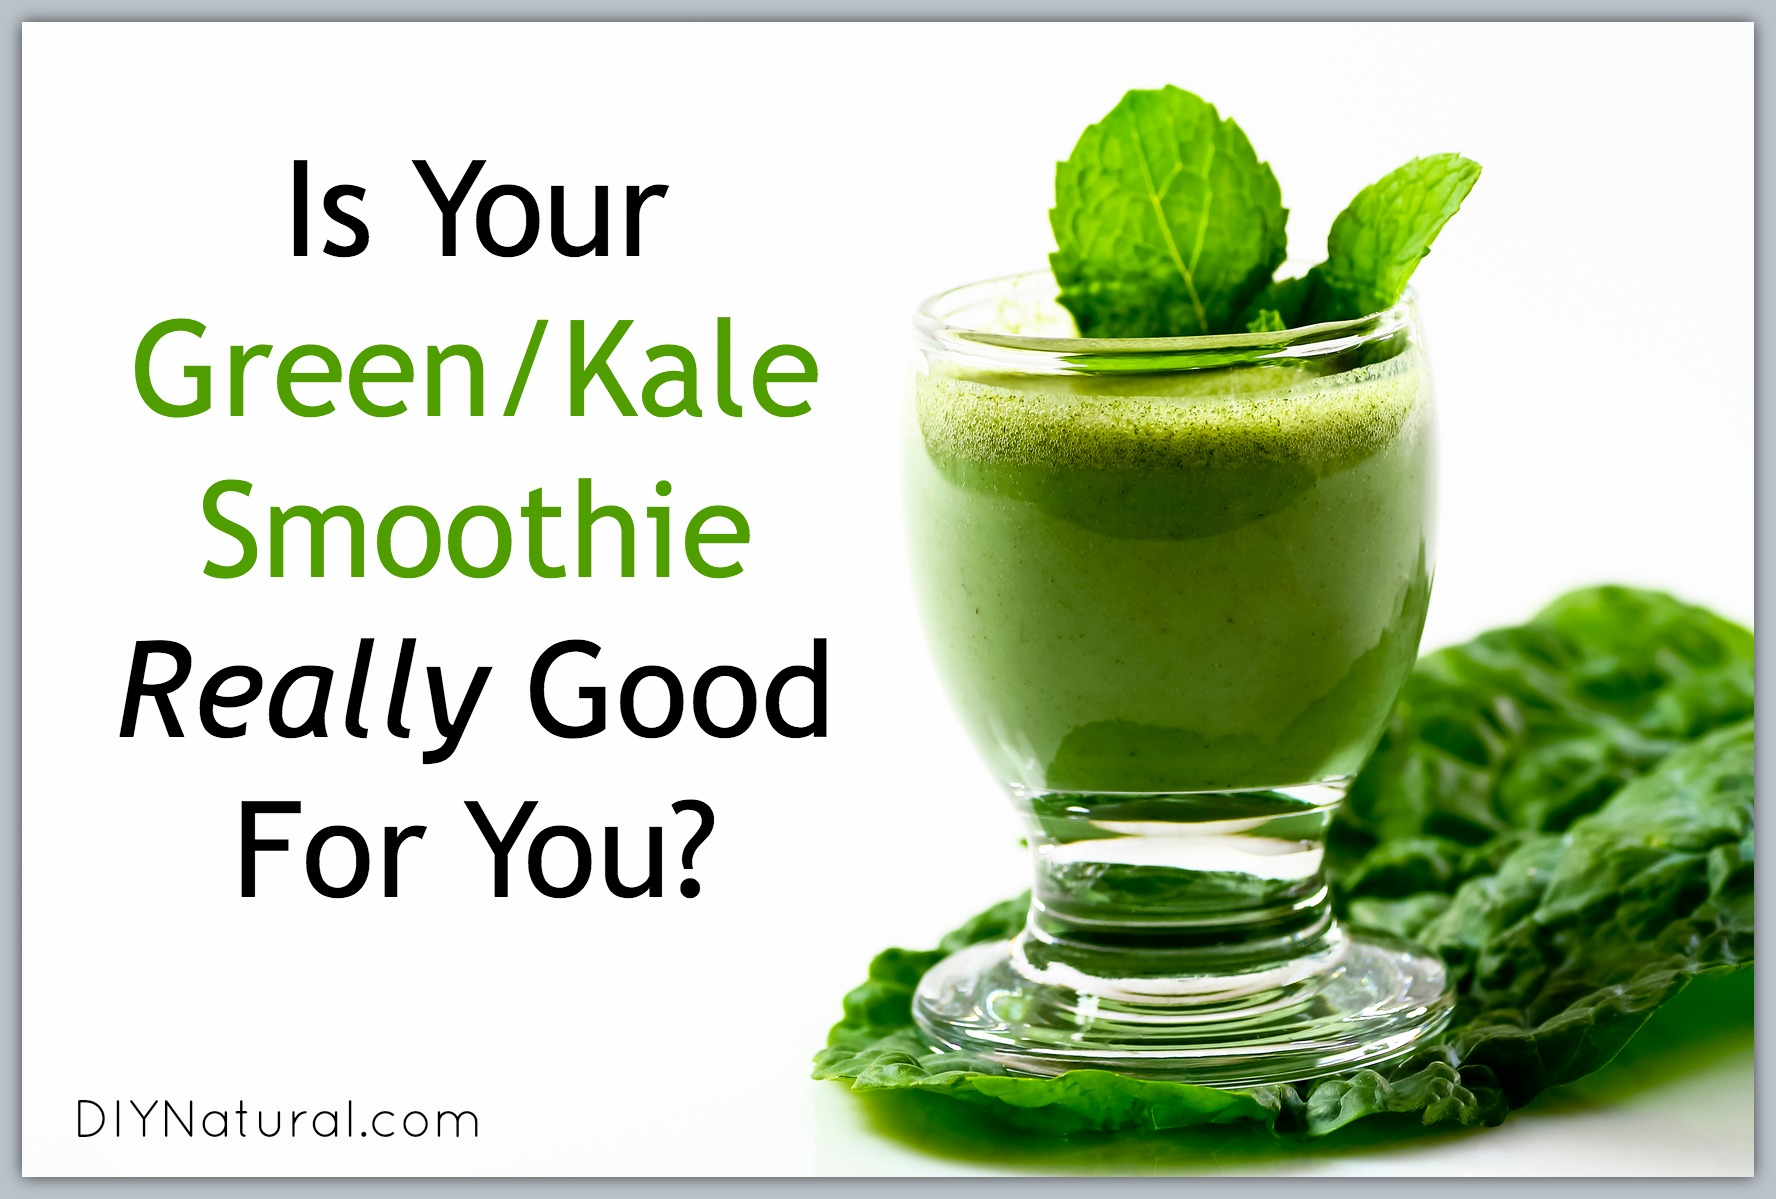 Kale Smoothie Are Raw Greens Really Healthy For You